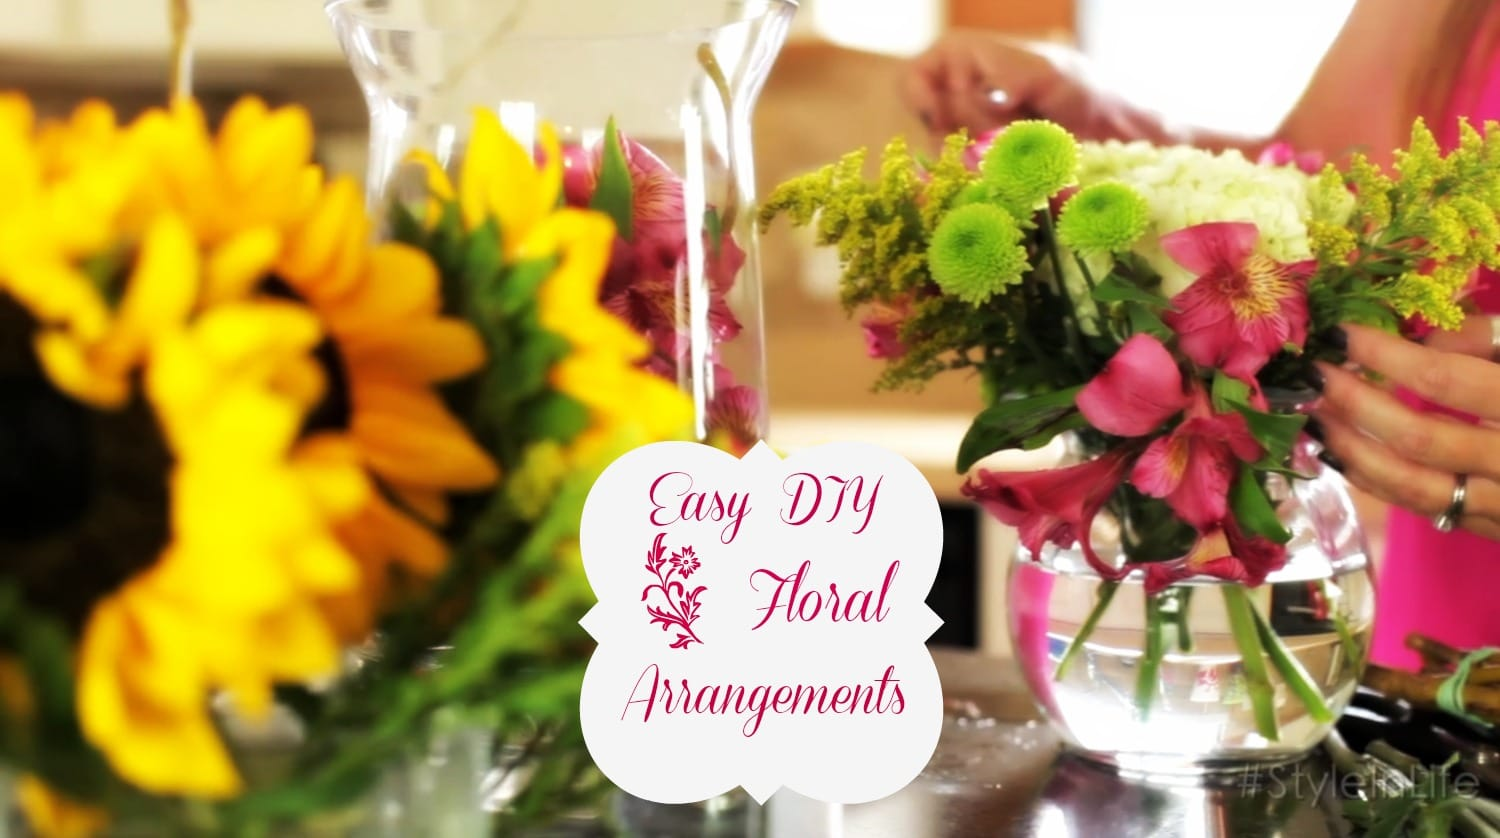 DIY Easy Floral Arrangements - ExtraordinaryMommy.com